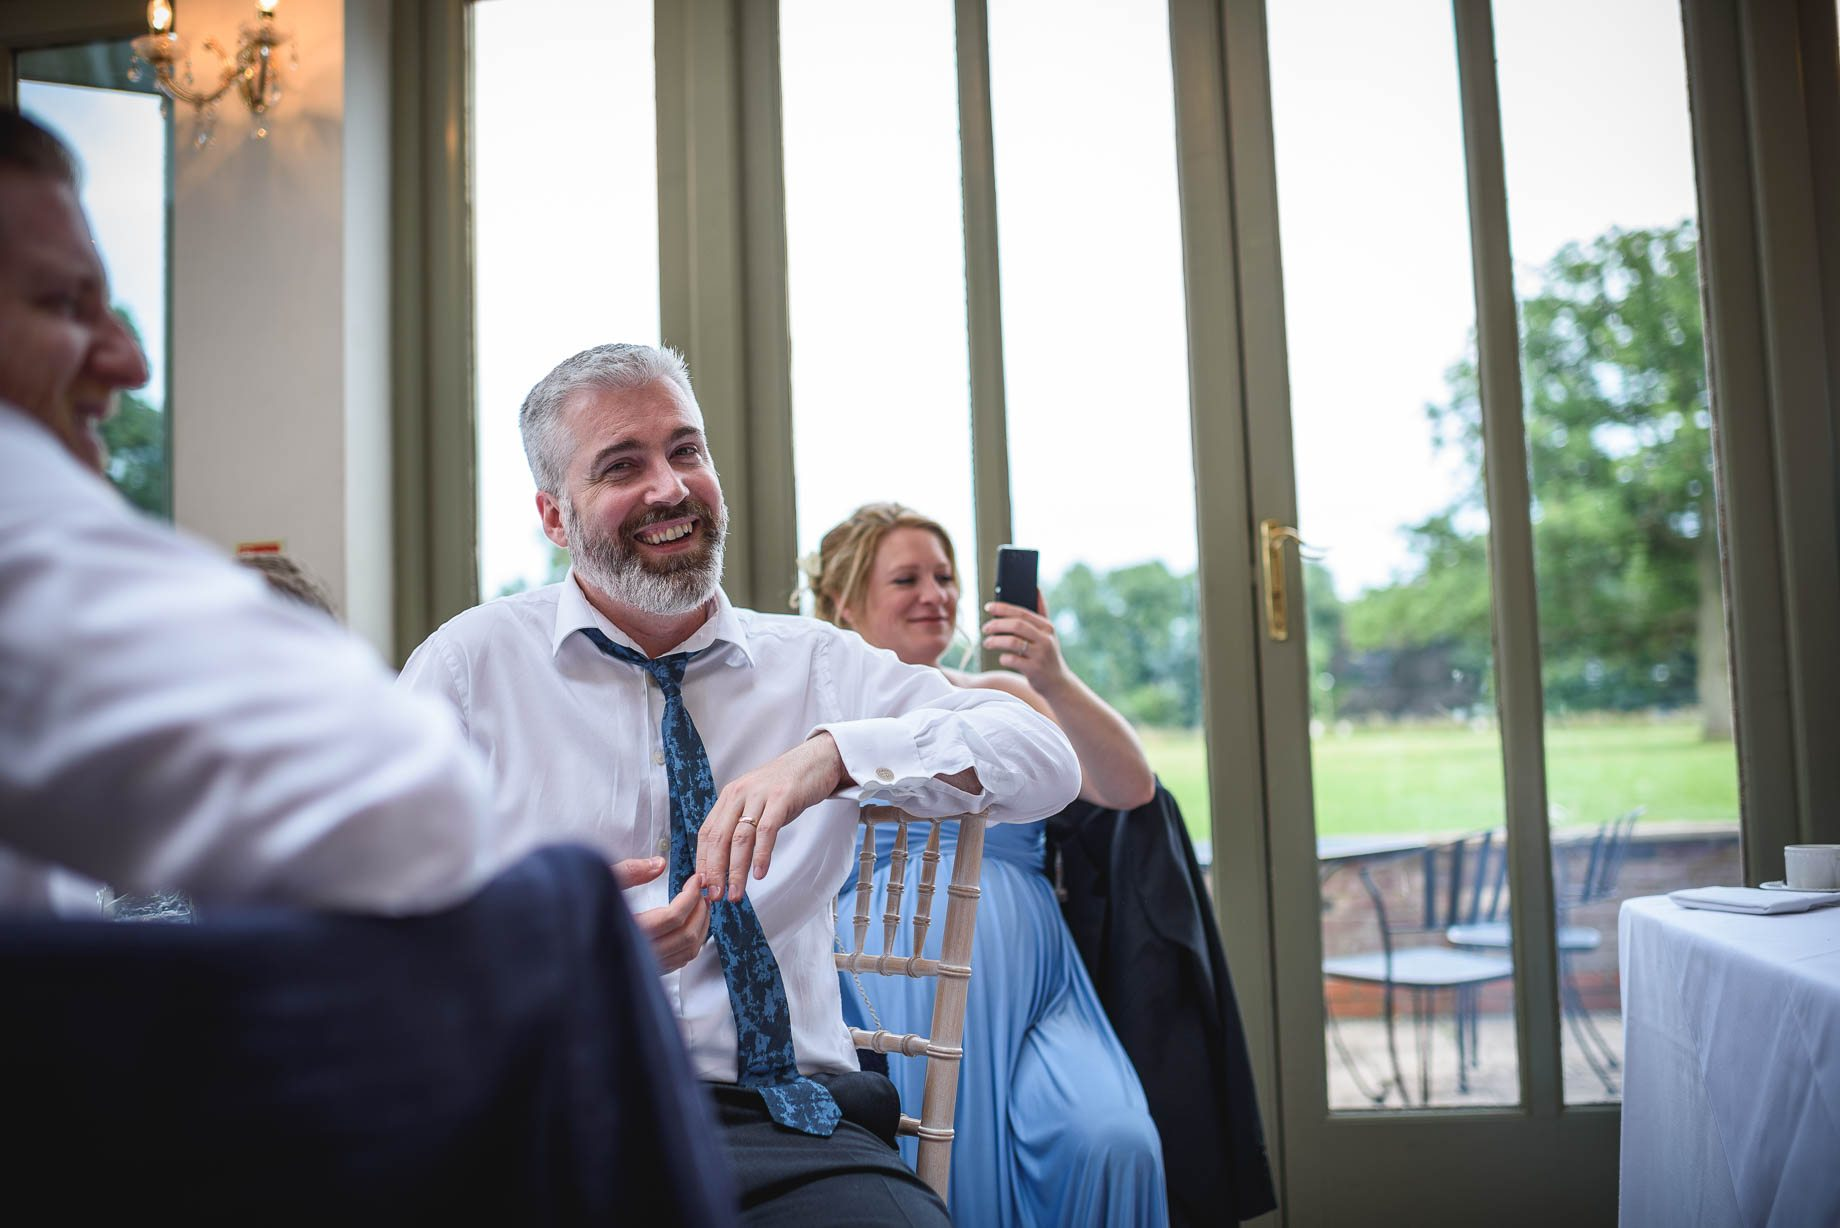 Hertfordshire wedding photography - Sarah and Stephen by Guy Collier Photography (132 of 161)